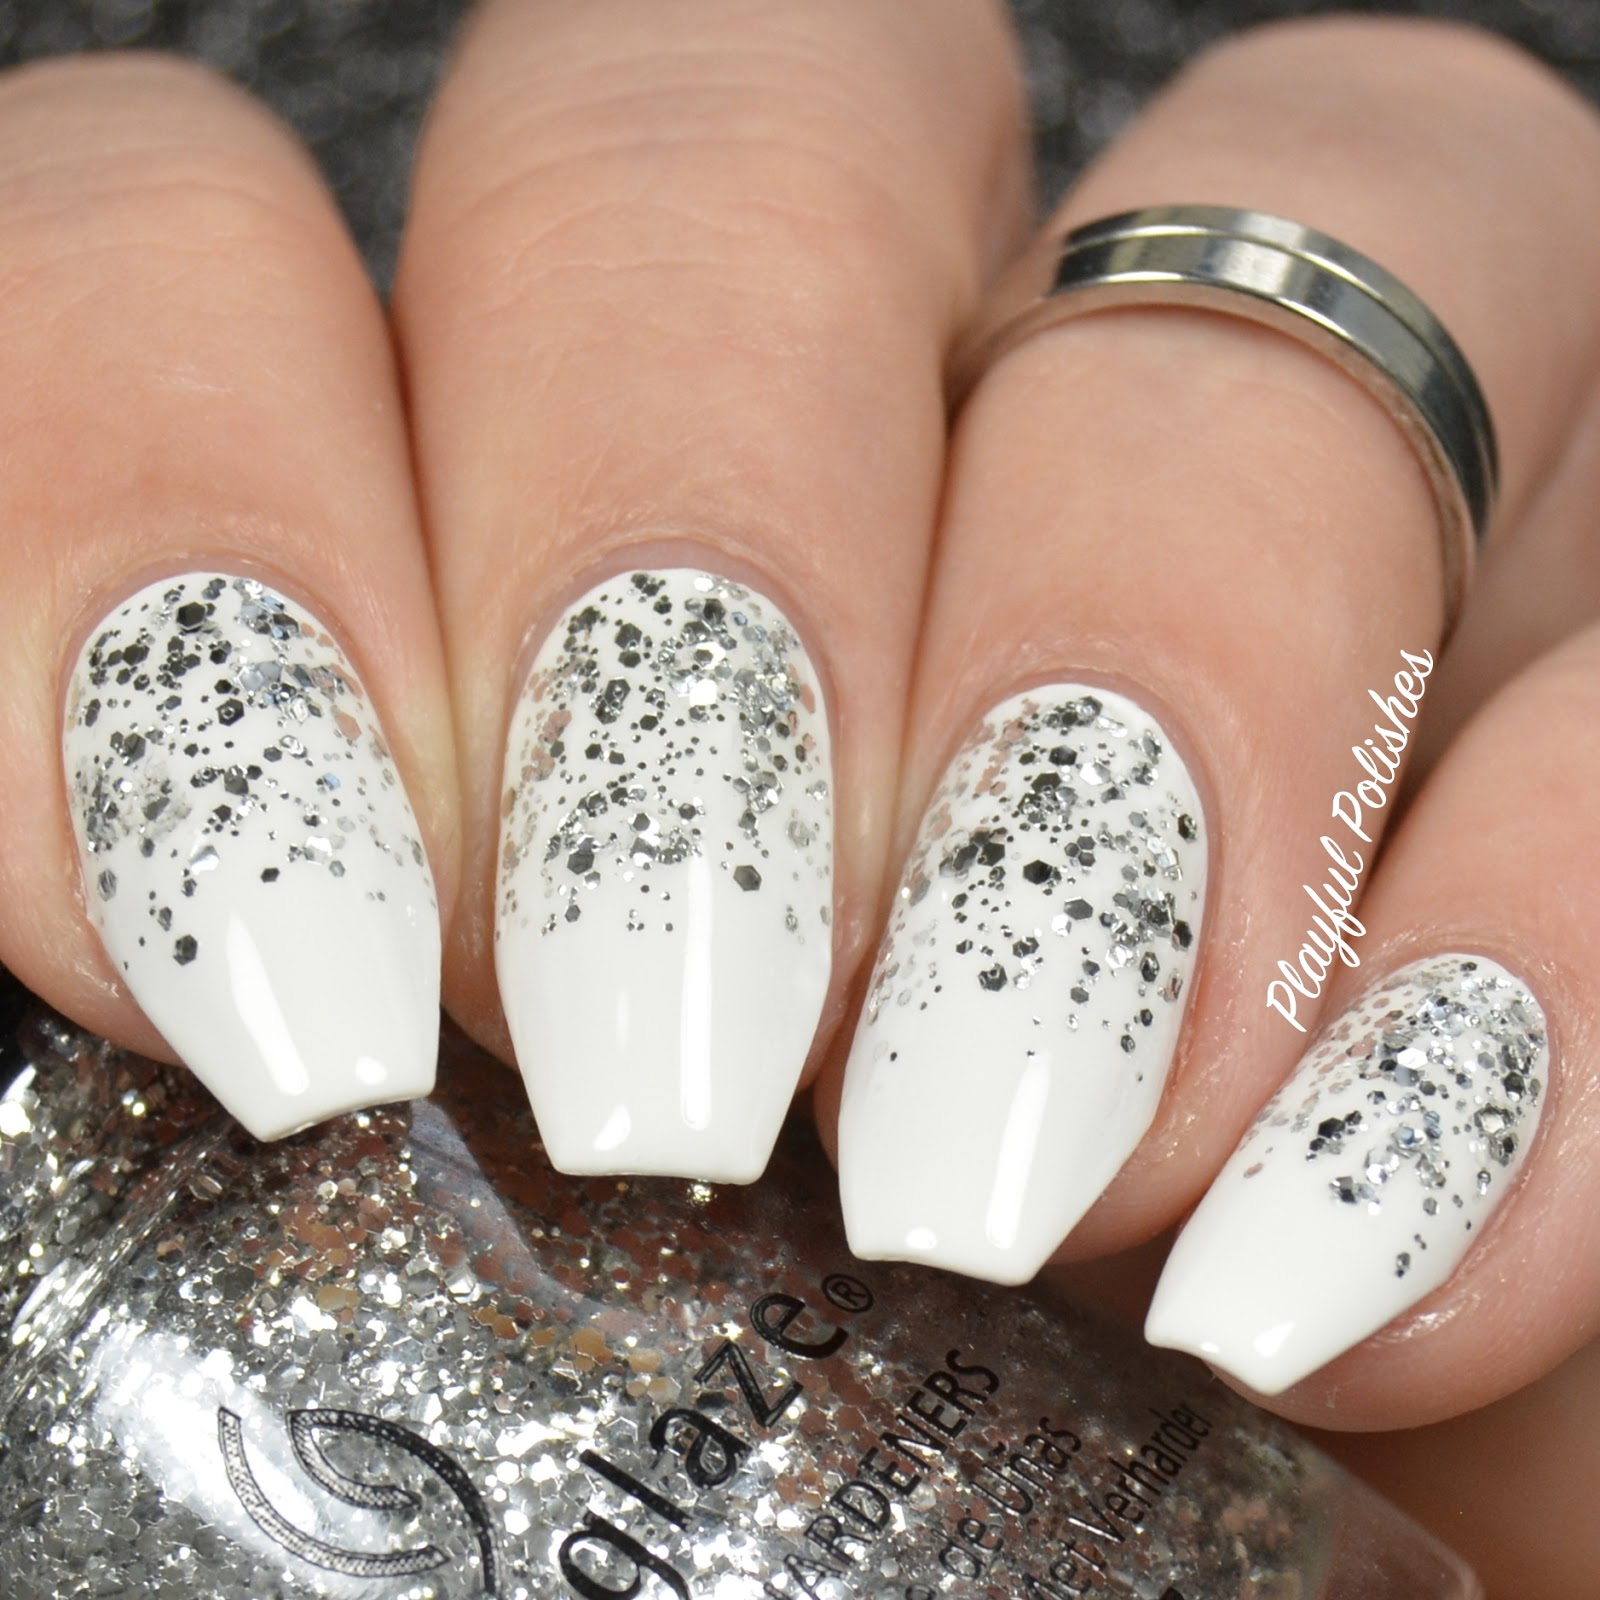 Playful Polishes: 3 SIMPLE & ELEGANT NEW YEARS NAIL DESIGNS!!